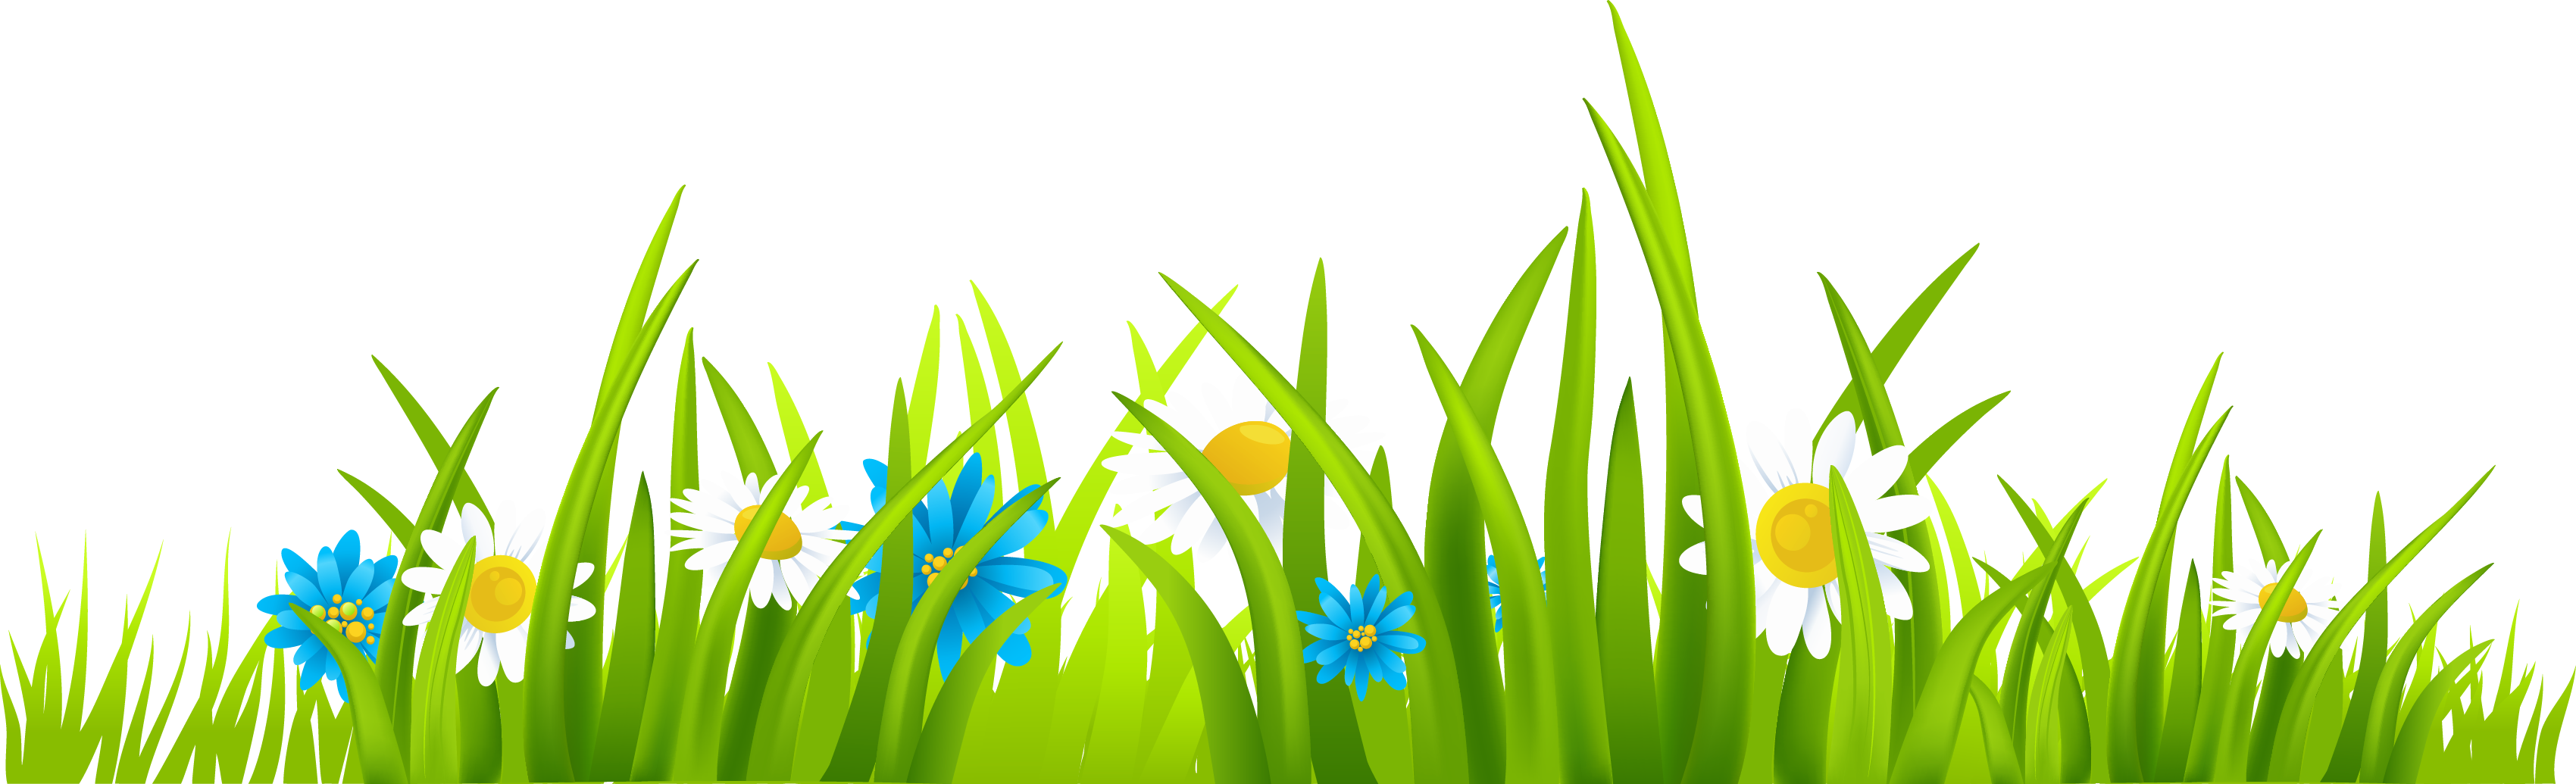 Flower and grass clipart free Clipart grass and flowers - ClipartFest free